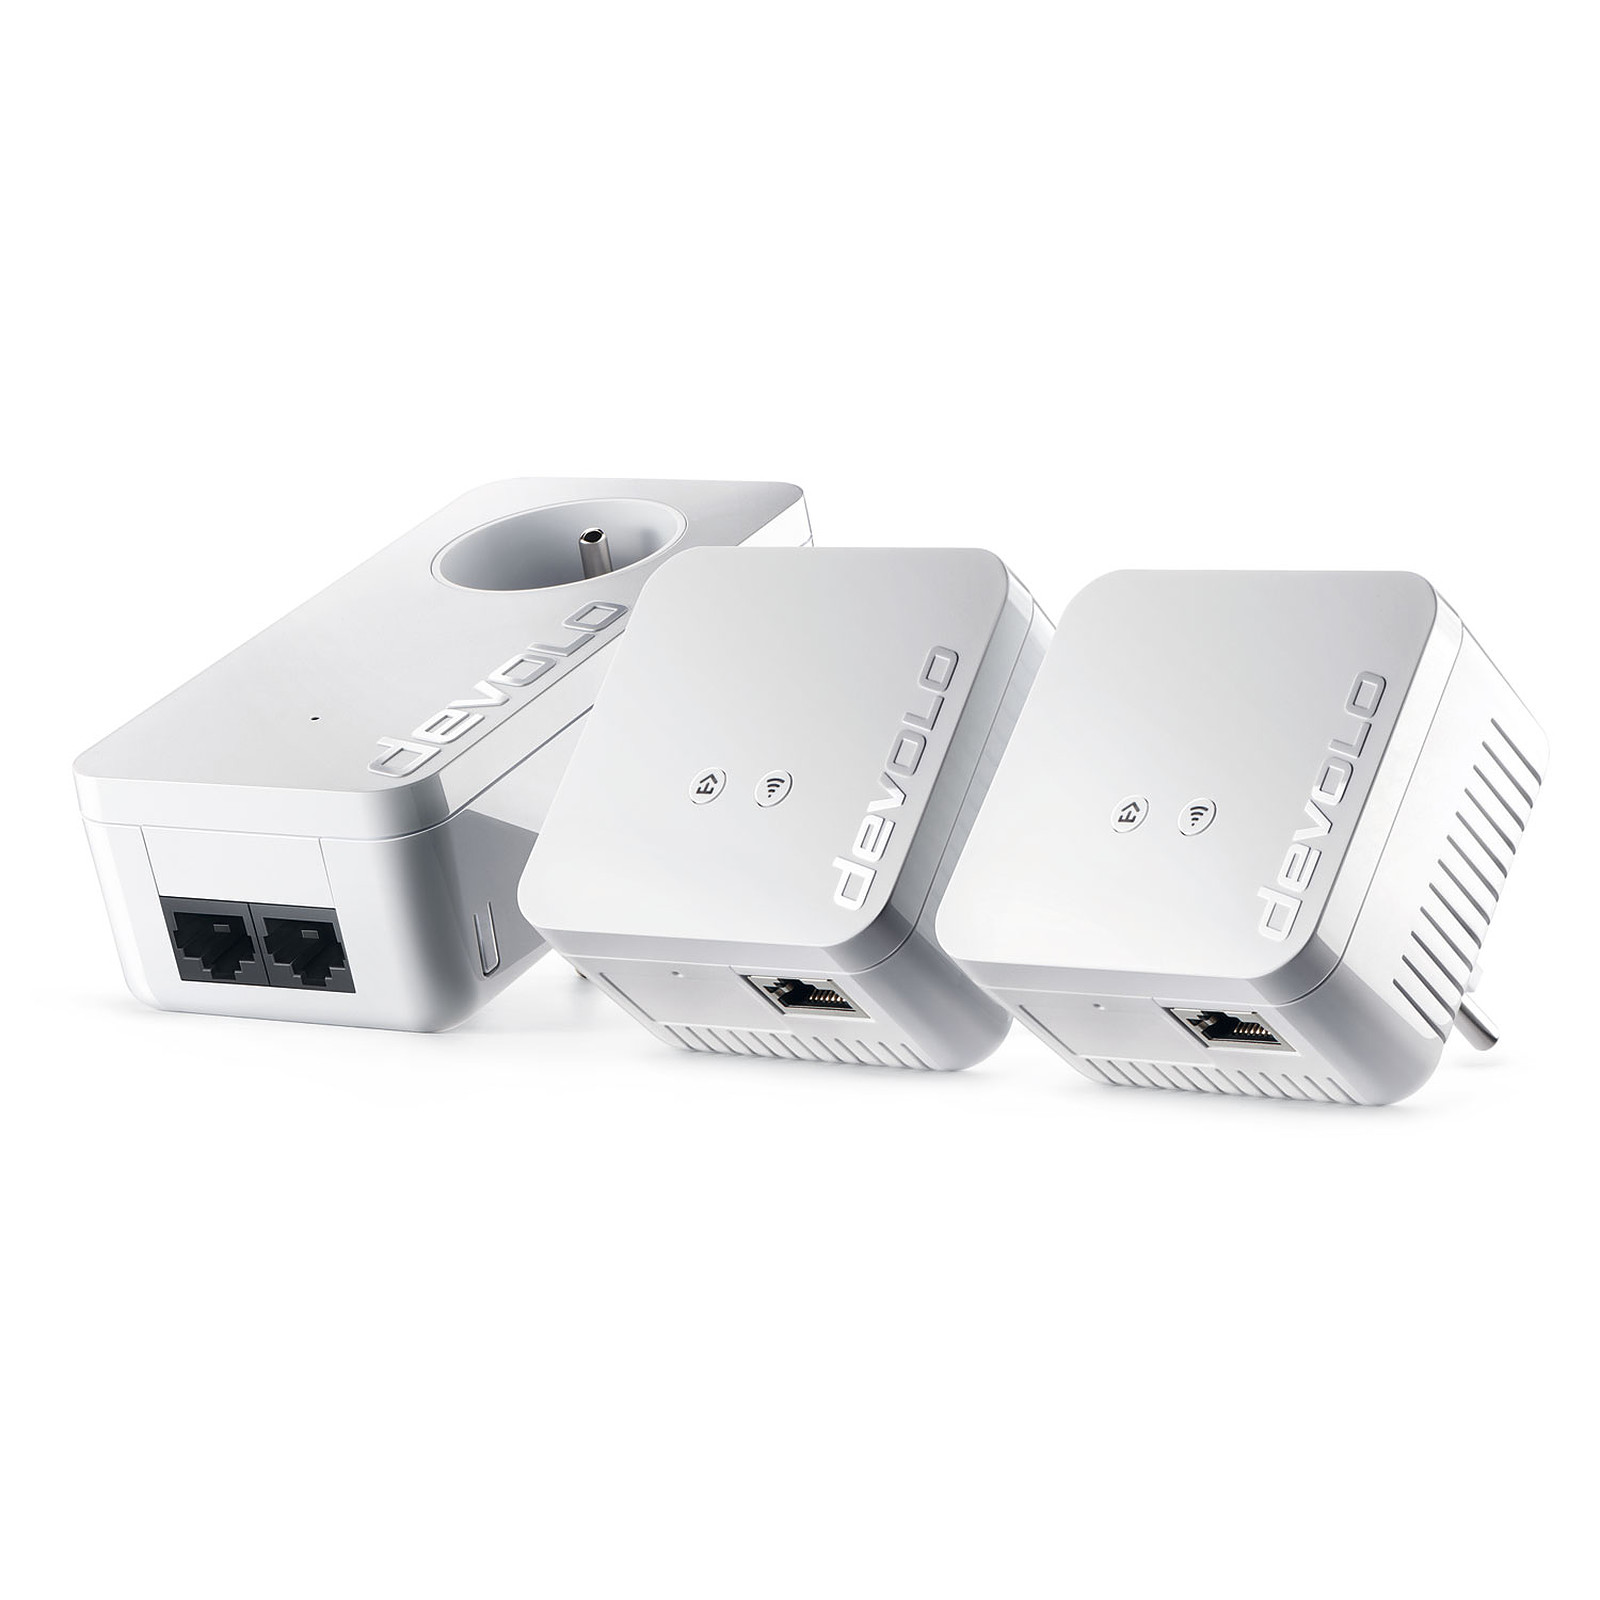 Devolo dLAN 550 Wi-Fi Network Kit